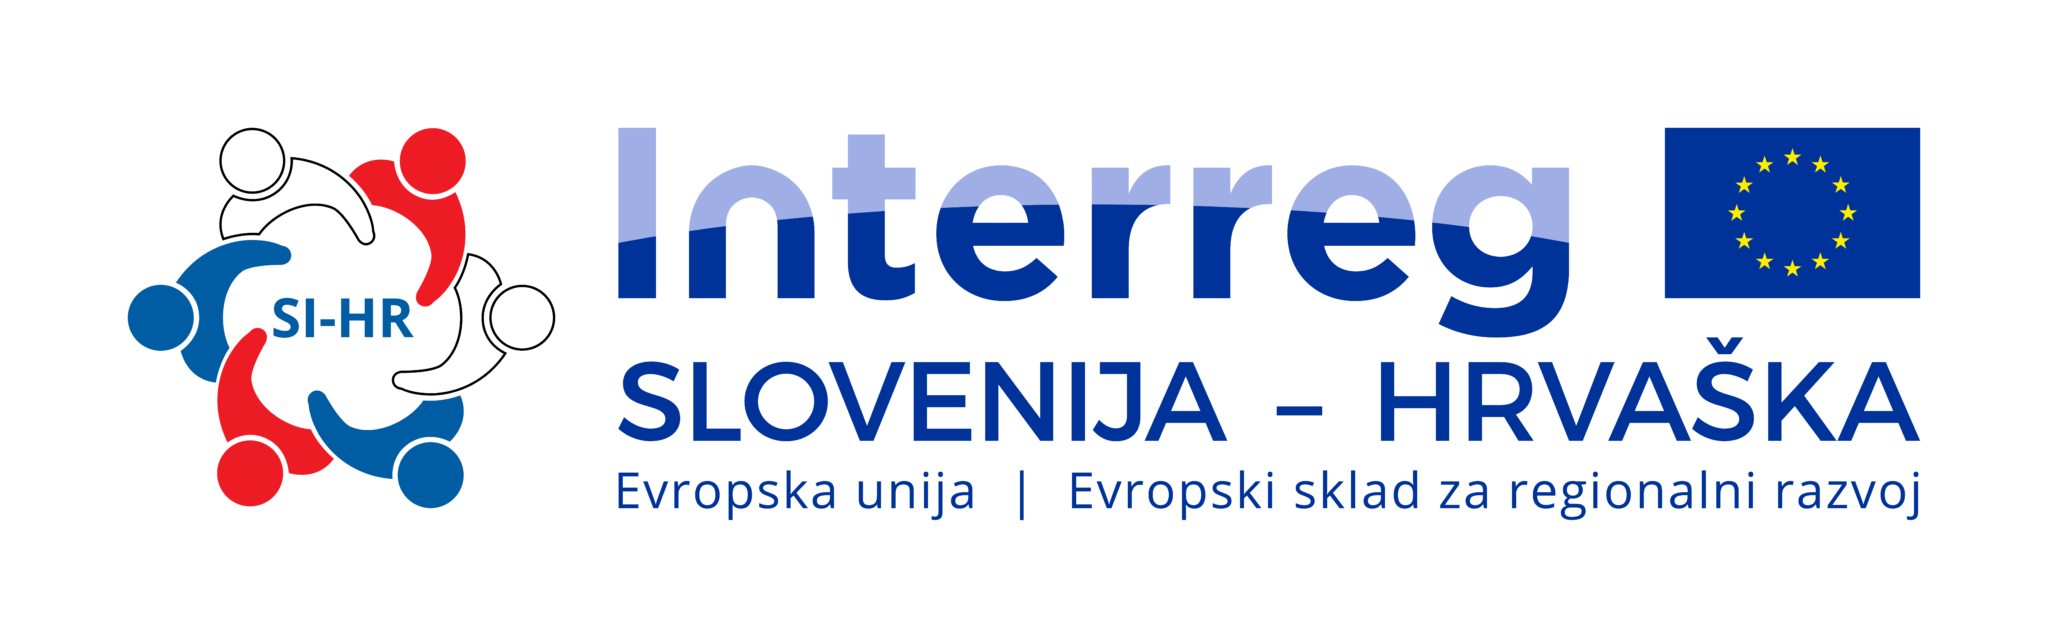 interreg_si-hr_sl_rgb